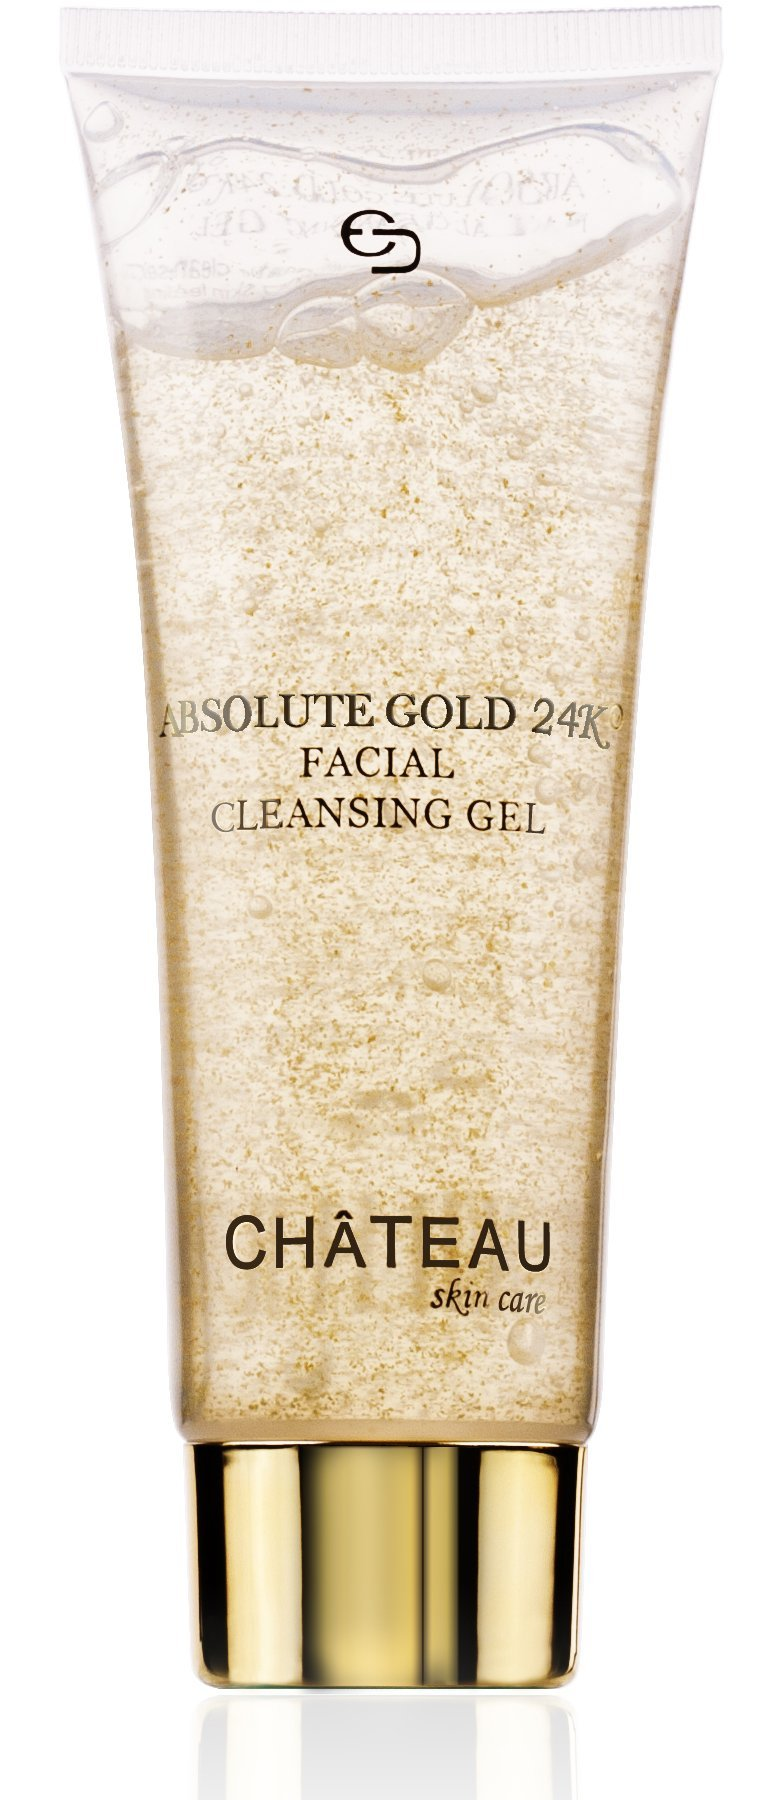 Absolute Gold 24K Facial Cleansing Gel - 24 KARAT GOLD, PEARL and SEAWEED EXTRACT. Excellent for all skin types. Minimizes pores and leaving skin glowing & radiant. FRAGRANCE FREE. by Botanical Beauty